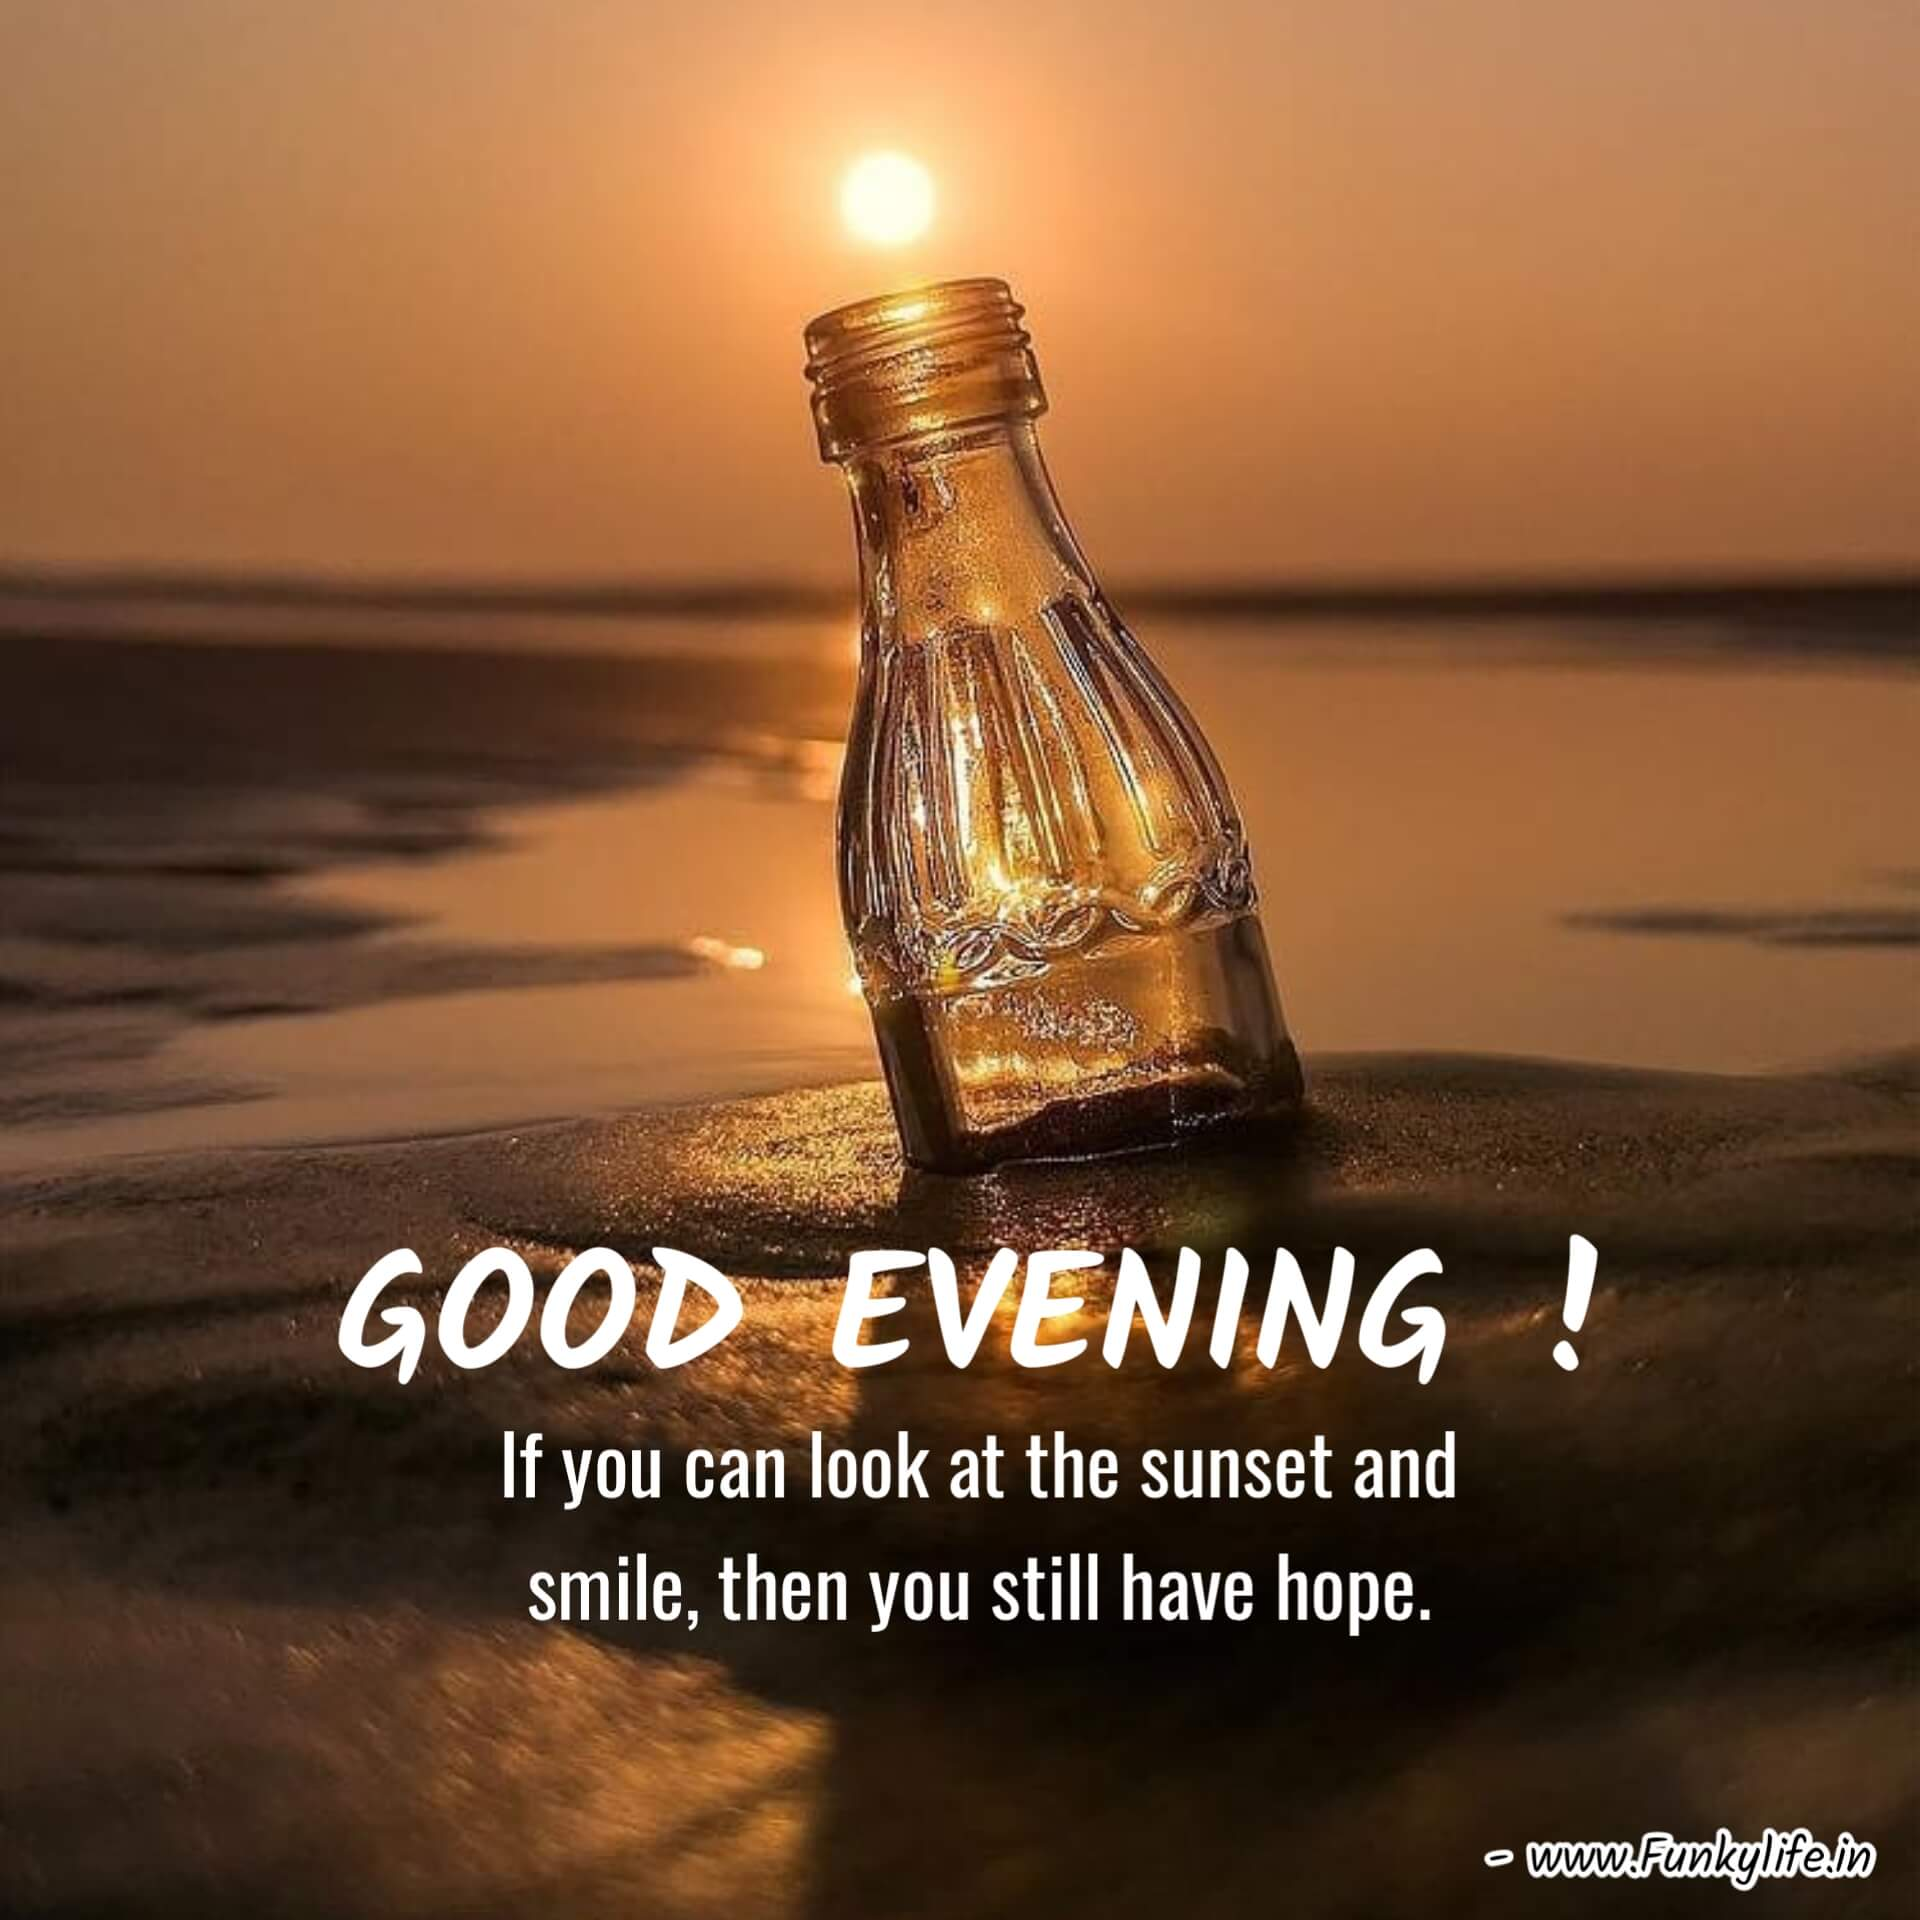 Inspirational Good Evening Images with Quotes